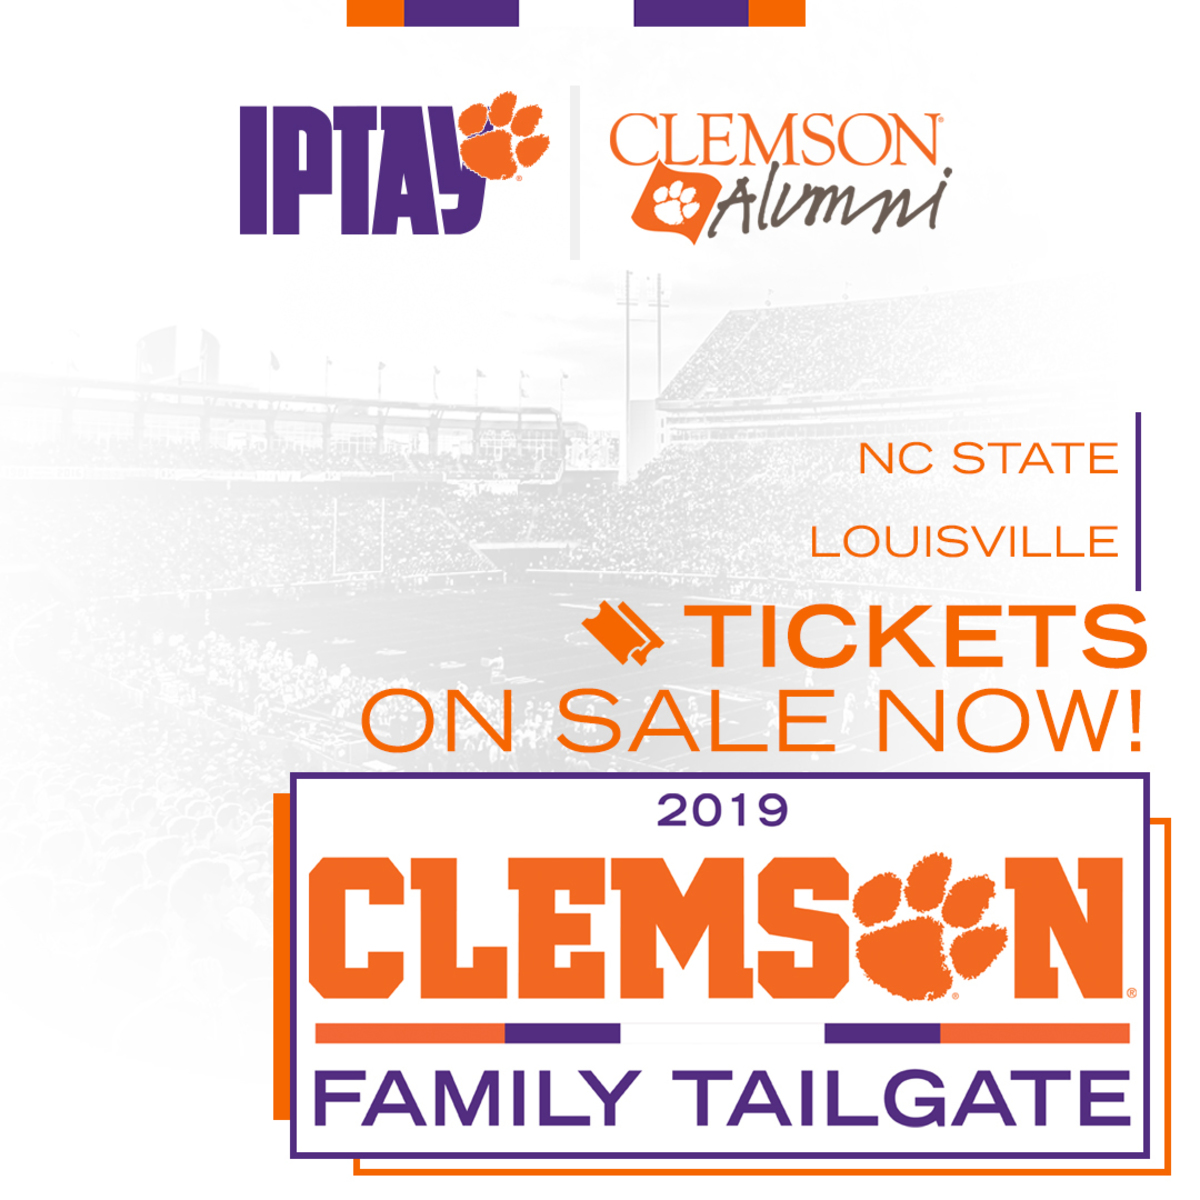 Tickets on sale now for Clemson Family Tailgate at NC State and Louisville